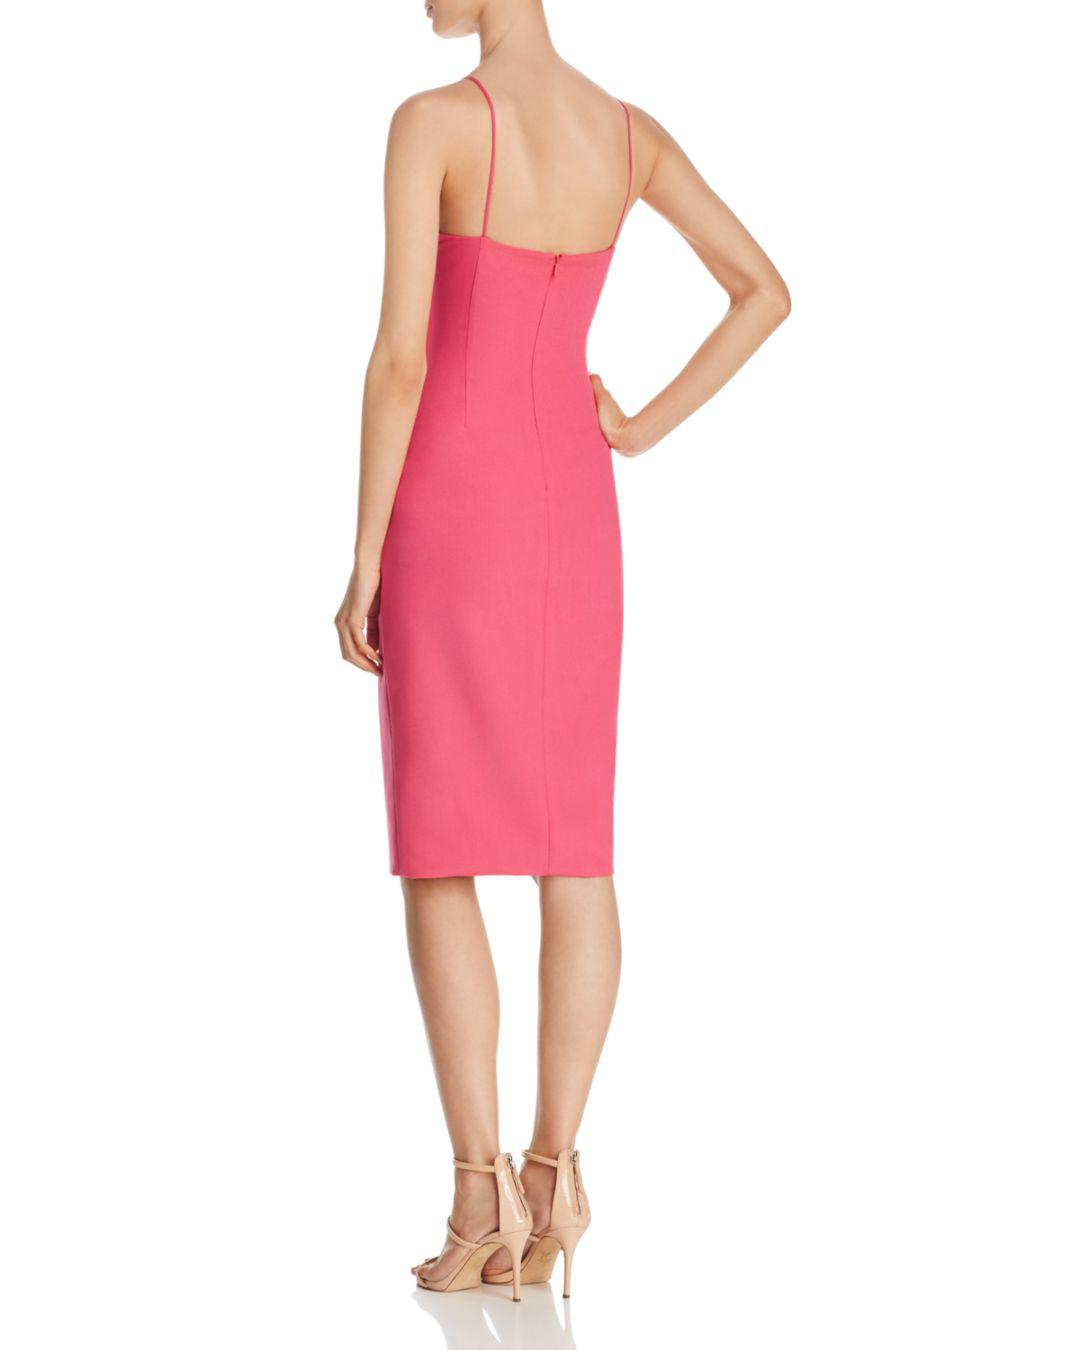 a912722483 Bloomingdales Evening Dresses Petite - Gomes Weine AG